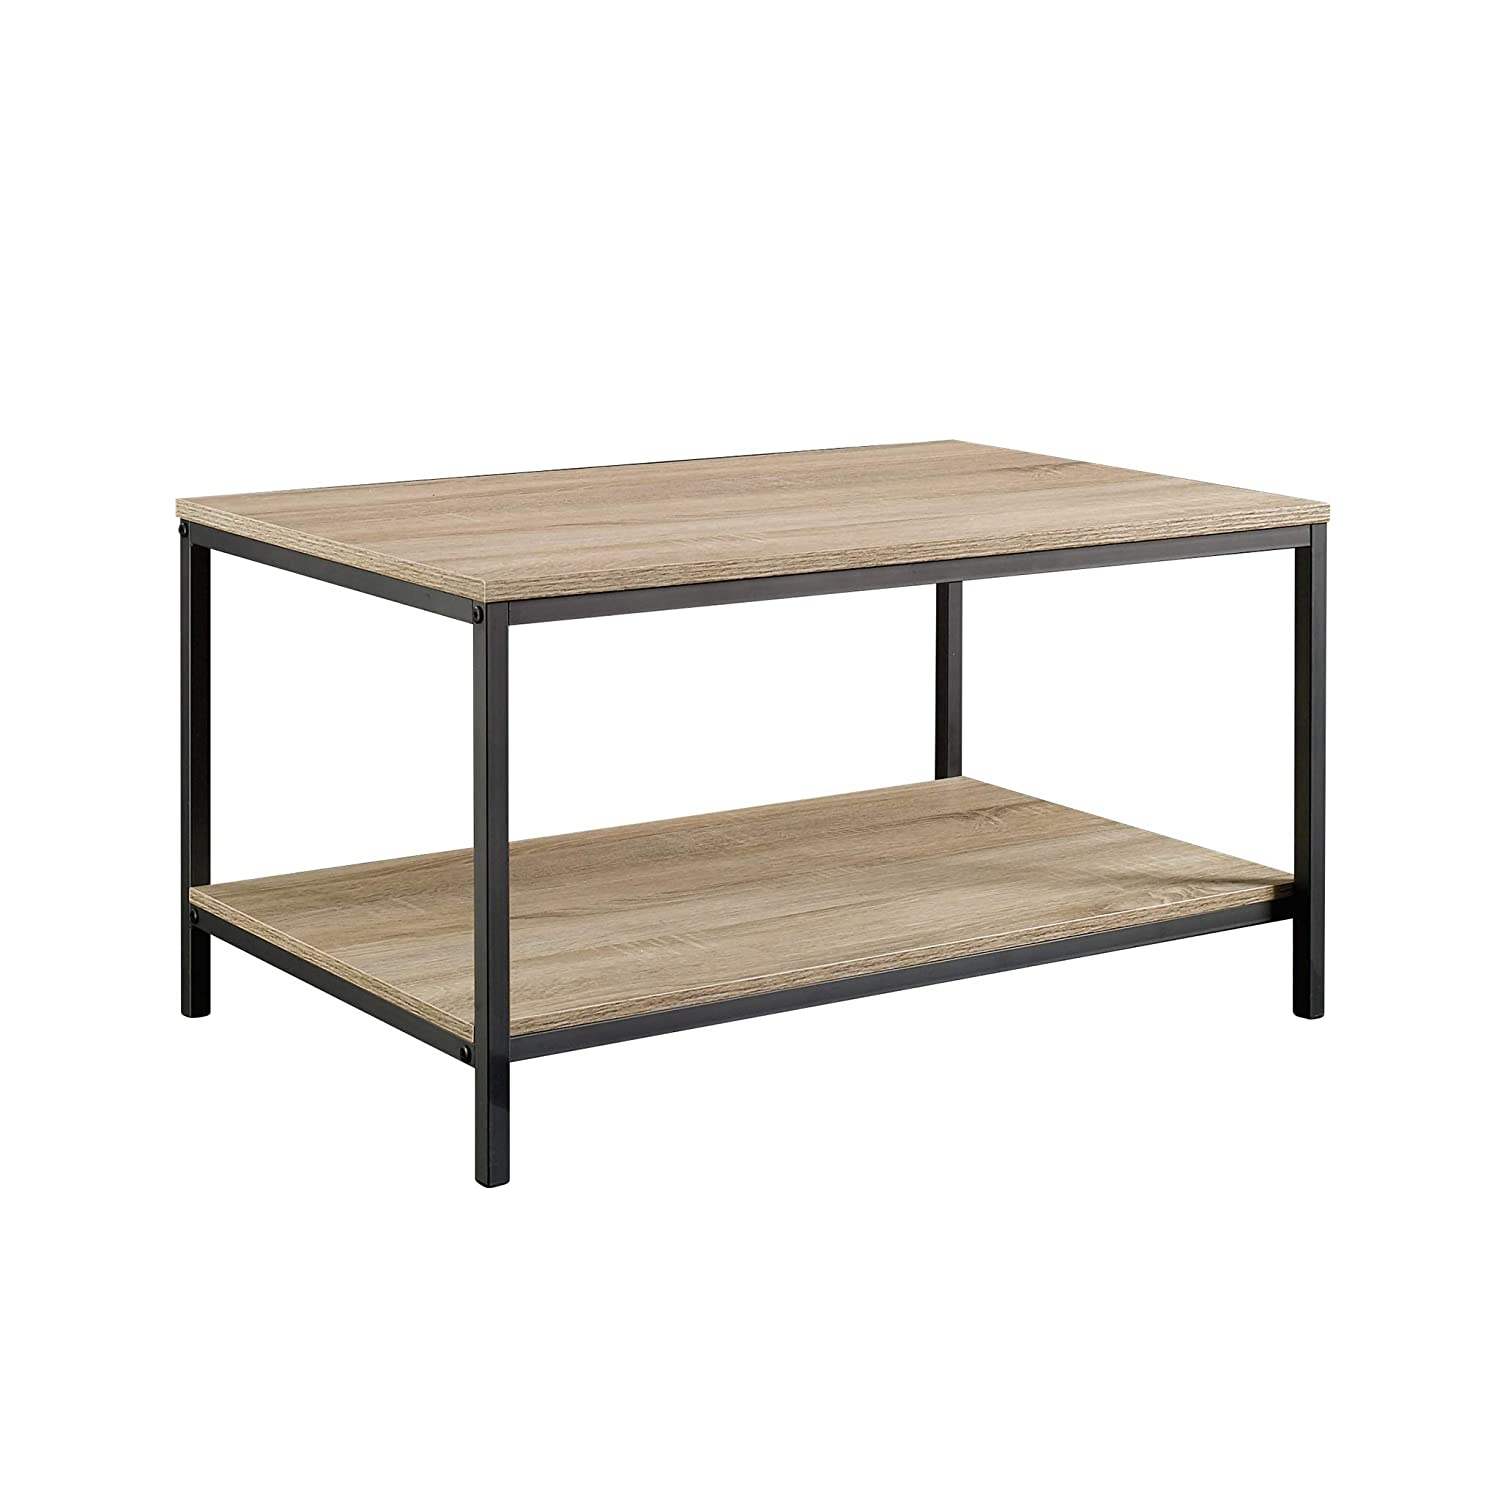 "Sauder 420275 North Avenue Coffee Table L: 31.50"" x W: 20.00"" x H: 16.54"" Charter Oak Finish"